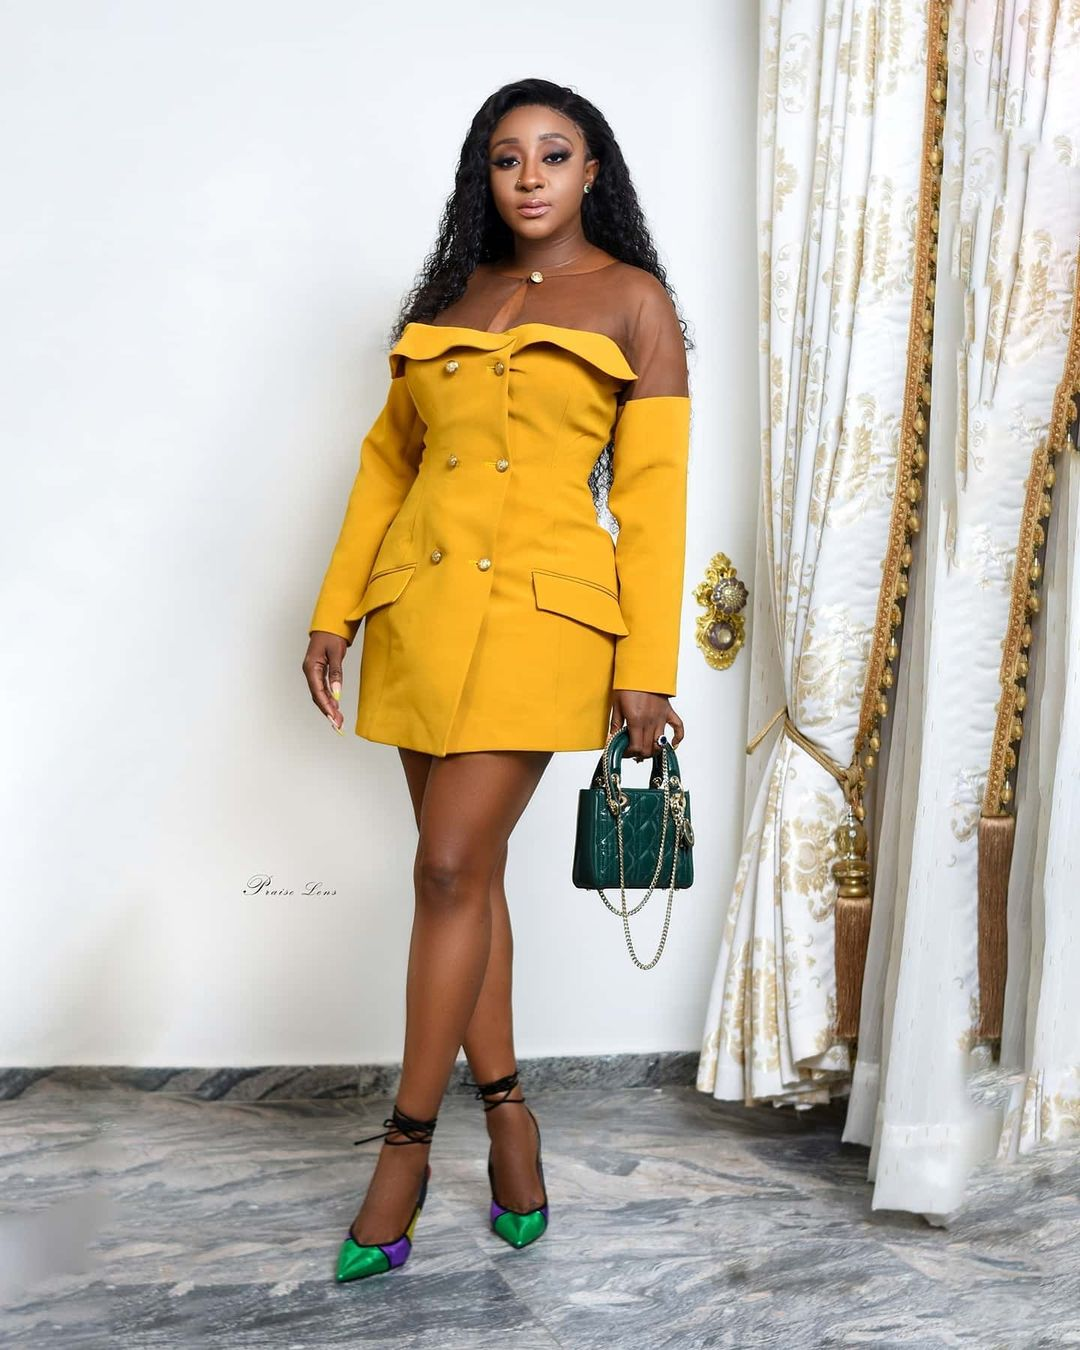 Ini Edo Sets A Personal Style Trend With Blazer